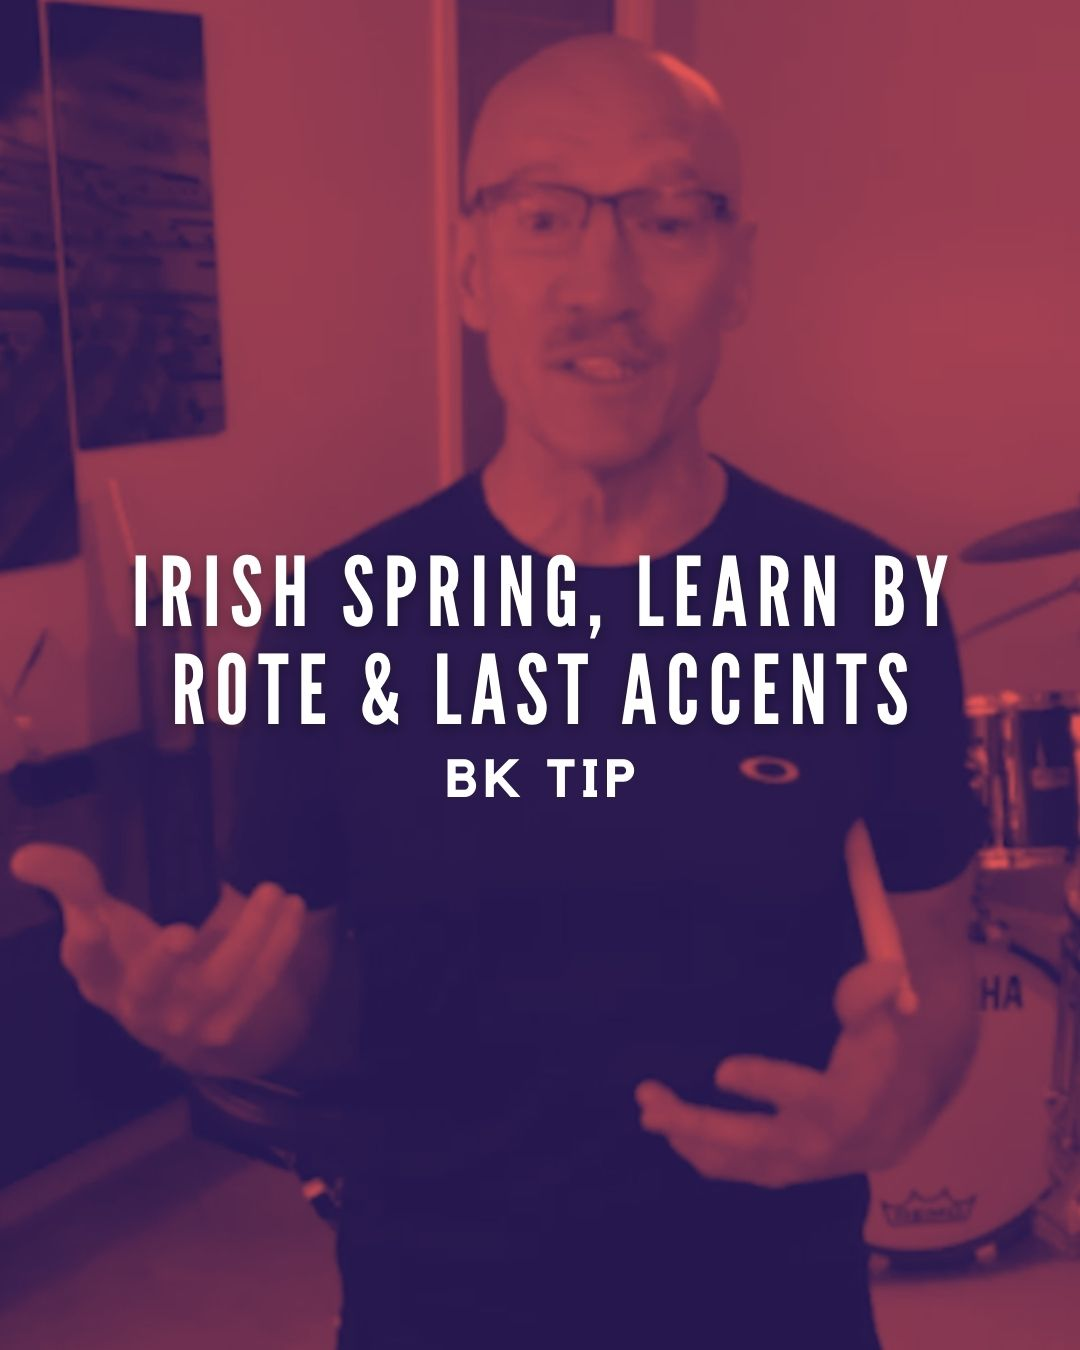 Irish Spring, Learn by Rote & Last Accents